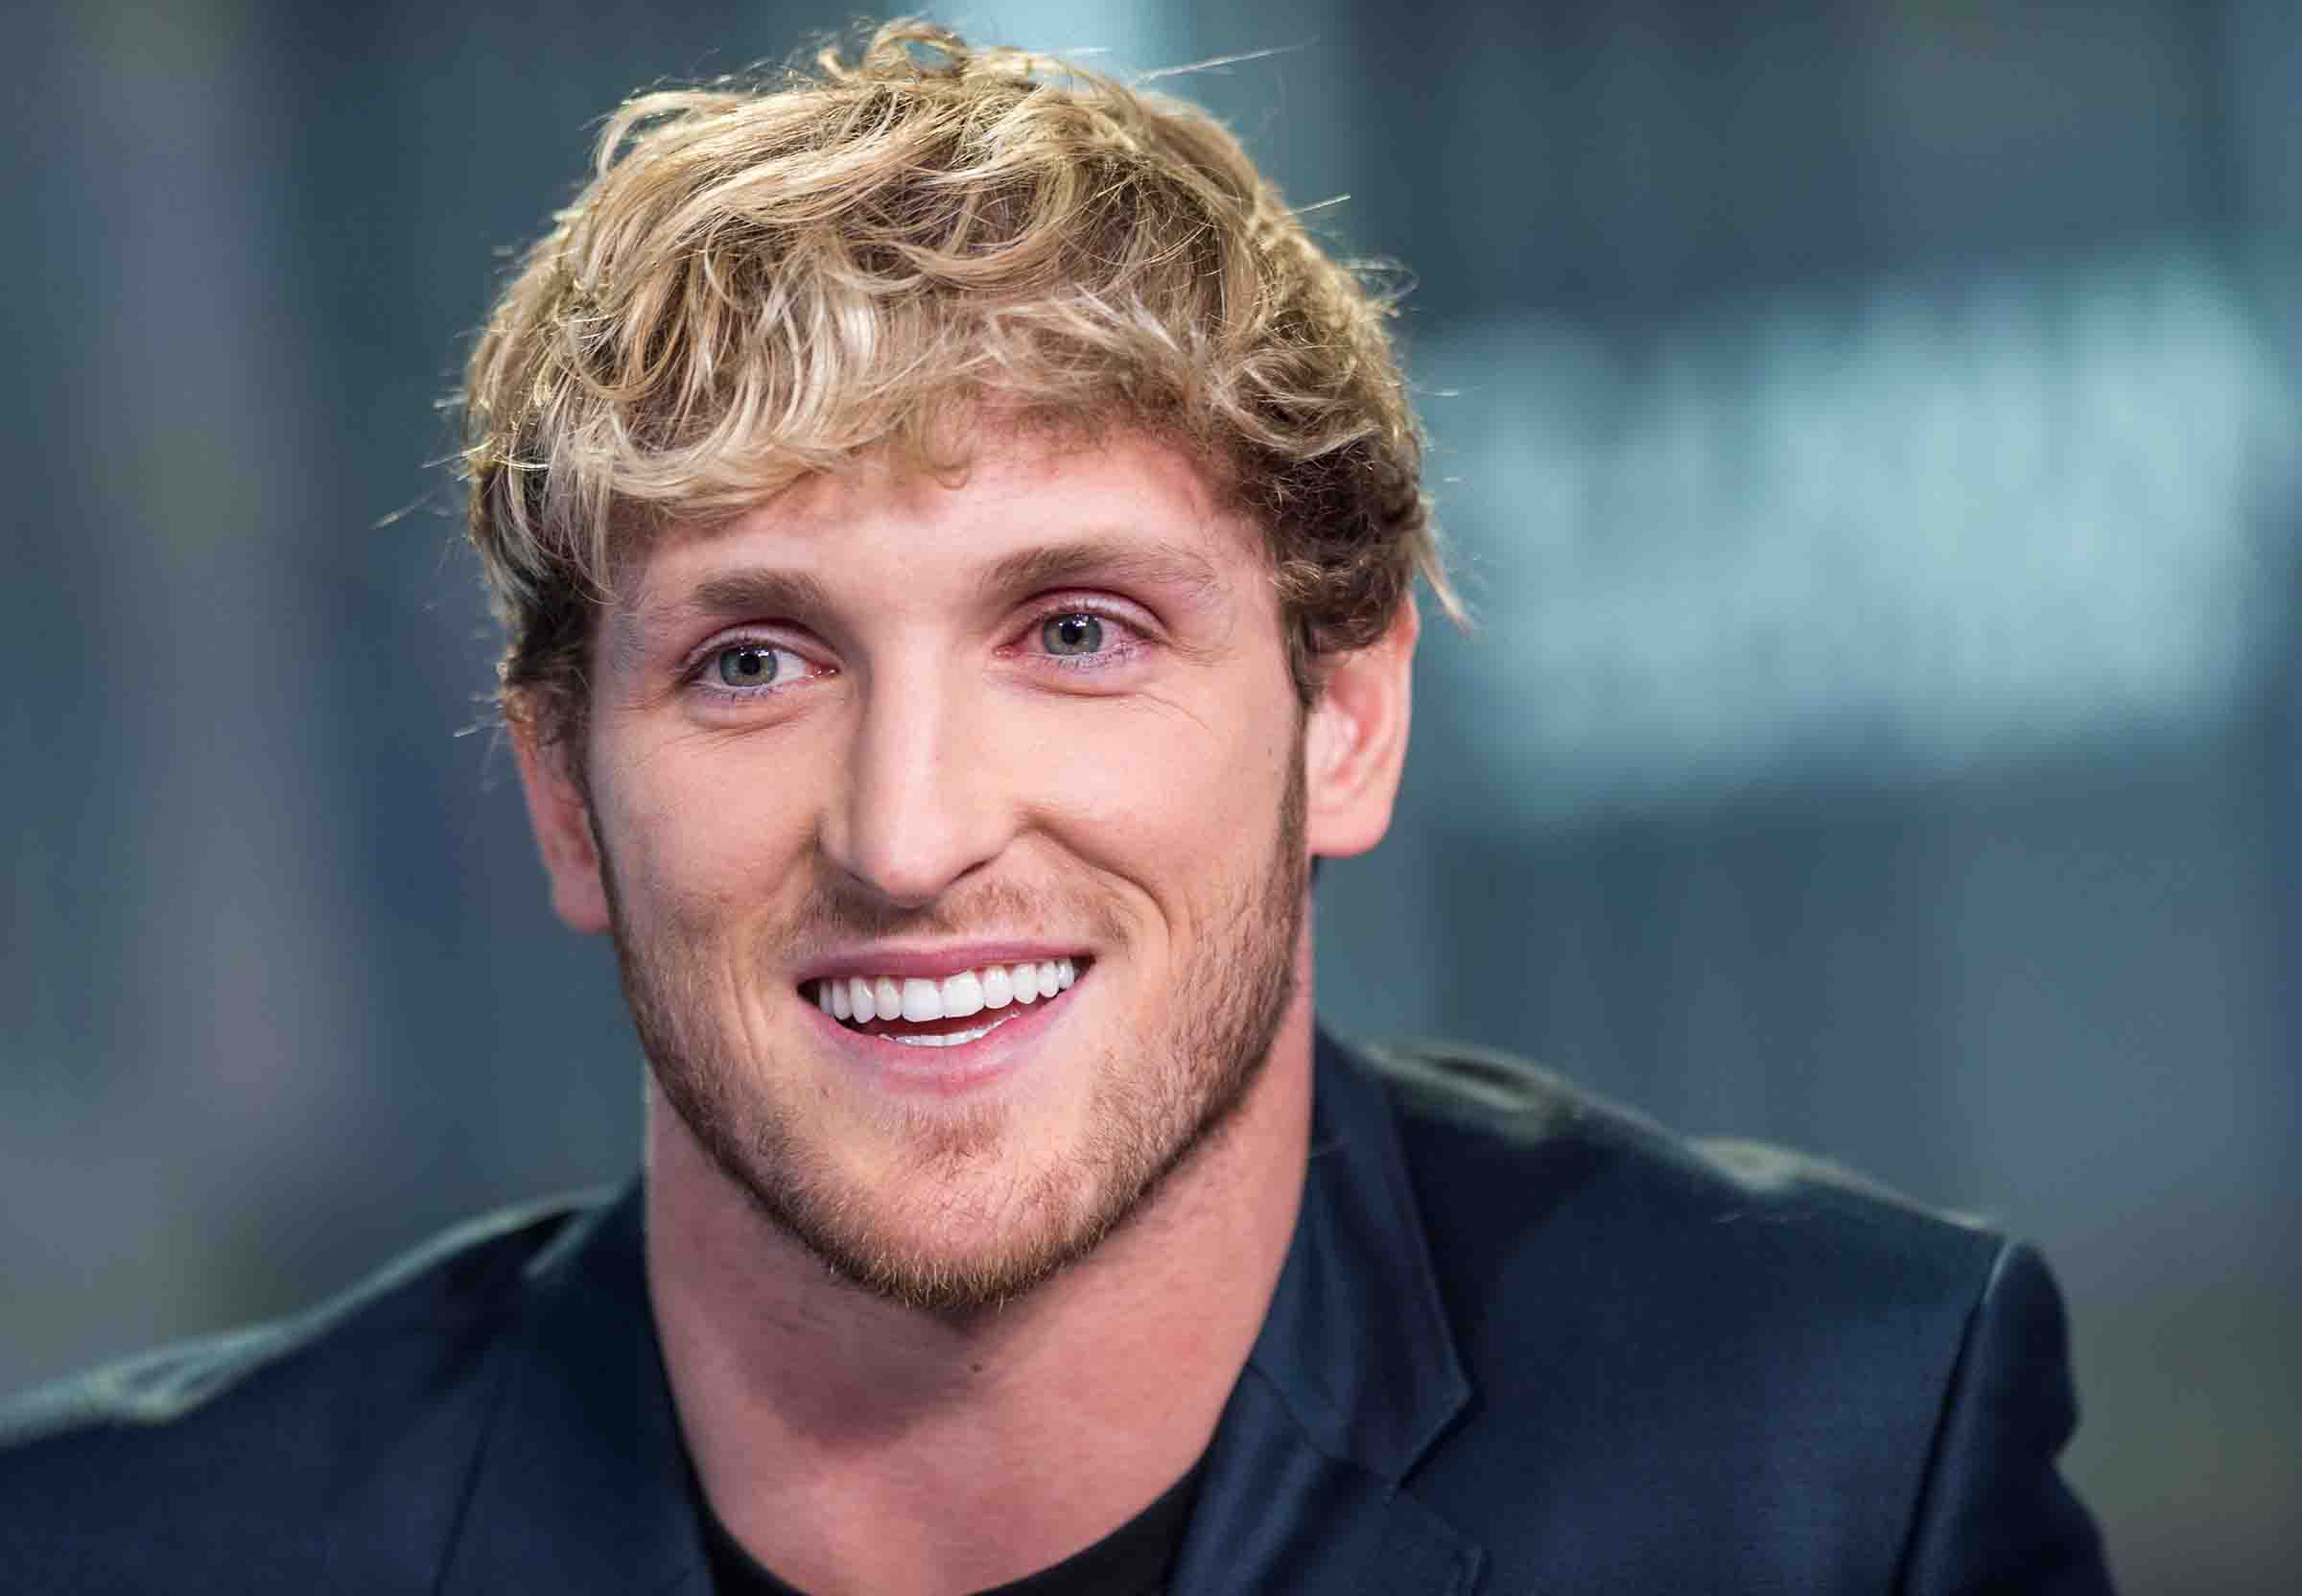 Logan Paul got Twitter mad again. This time he announced he's moving to Puerto Rico to protect his net worth.